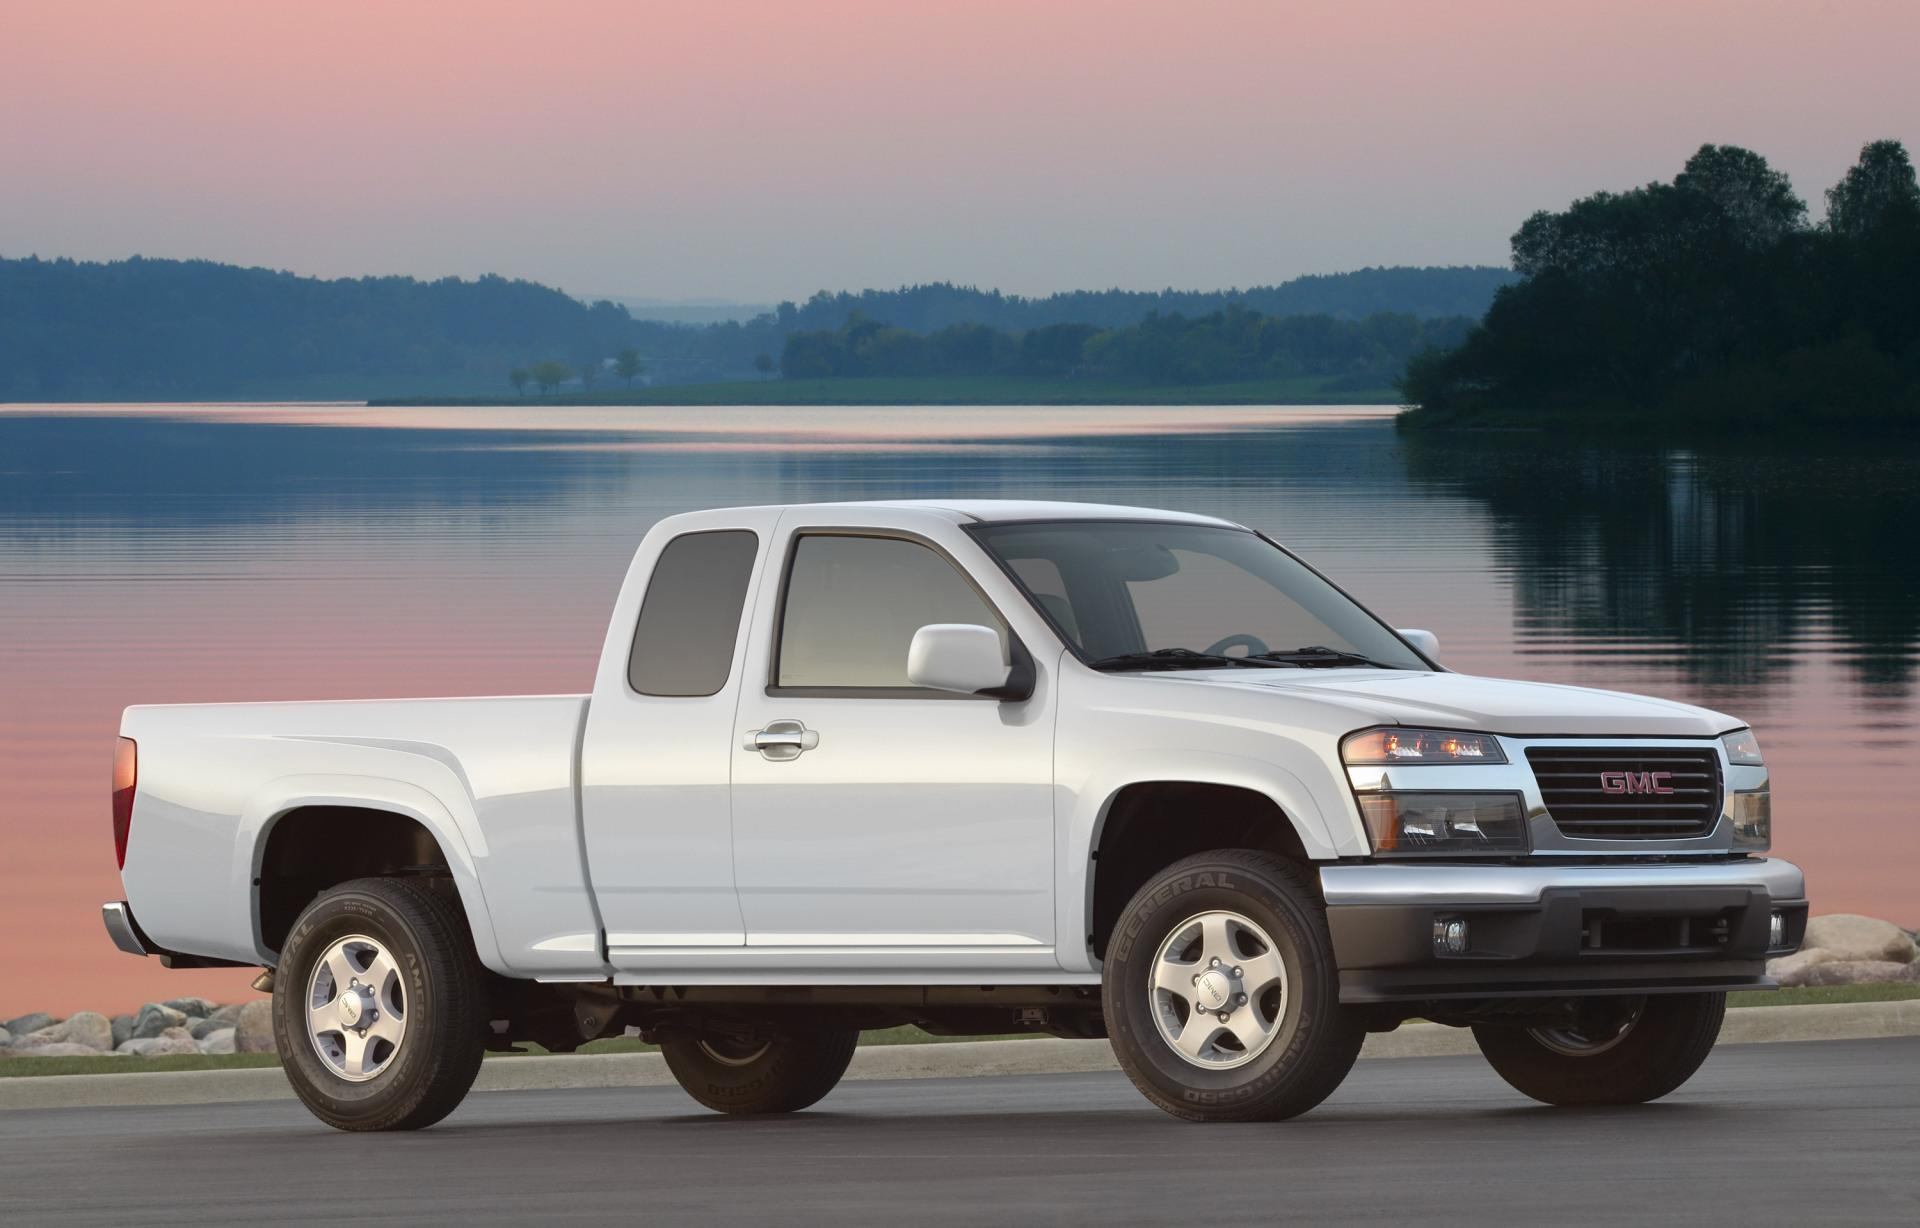 CHEVROLET 2009 TRAVERSE OWNERS MANUAL Pdf Download